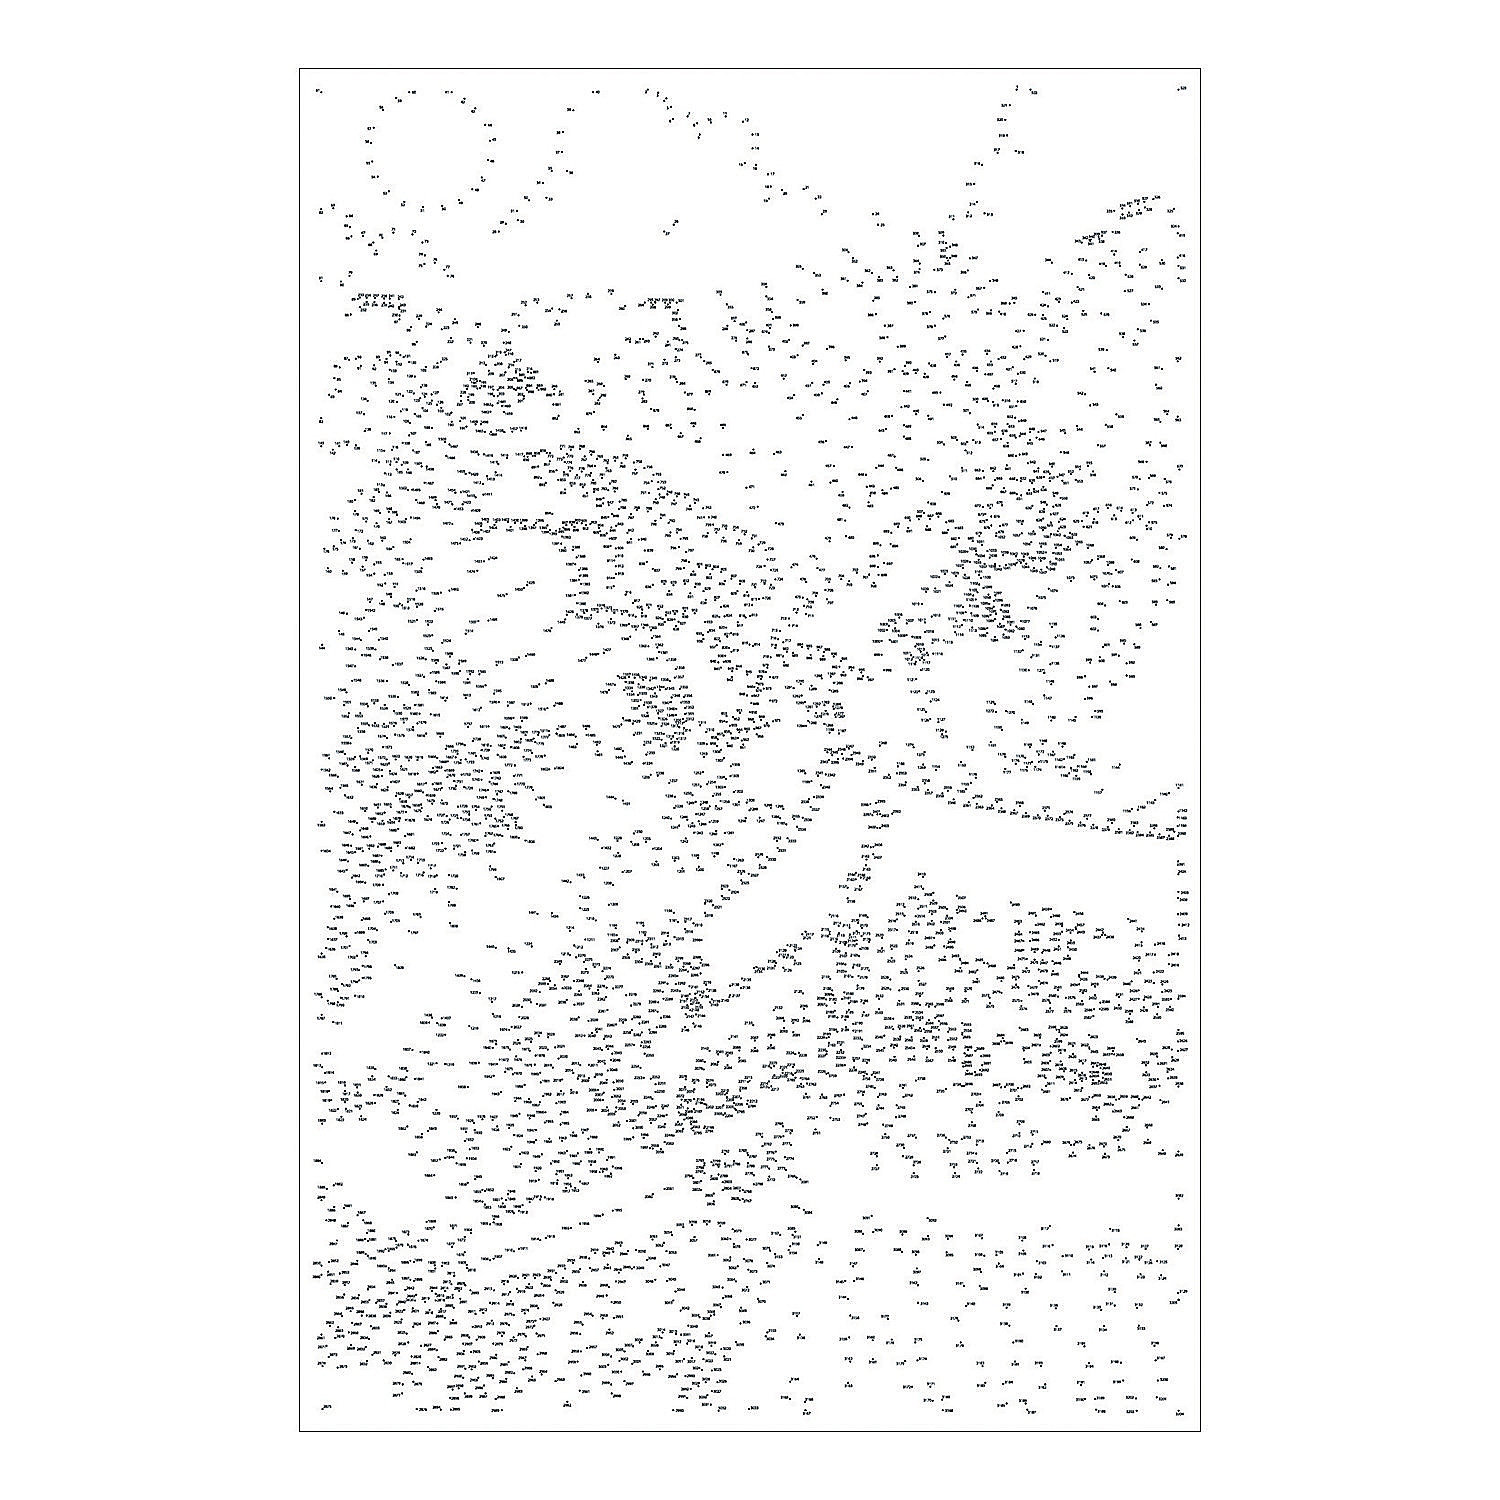 Extreme Dot to Dot 7-Poster Set: Famous Destinations, Brainteasers ...